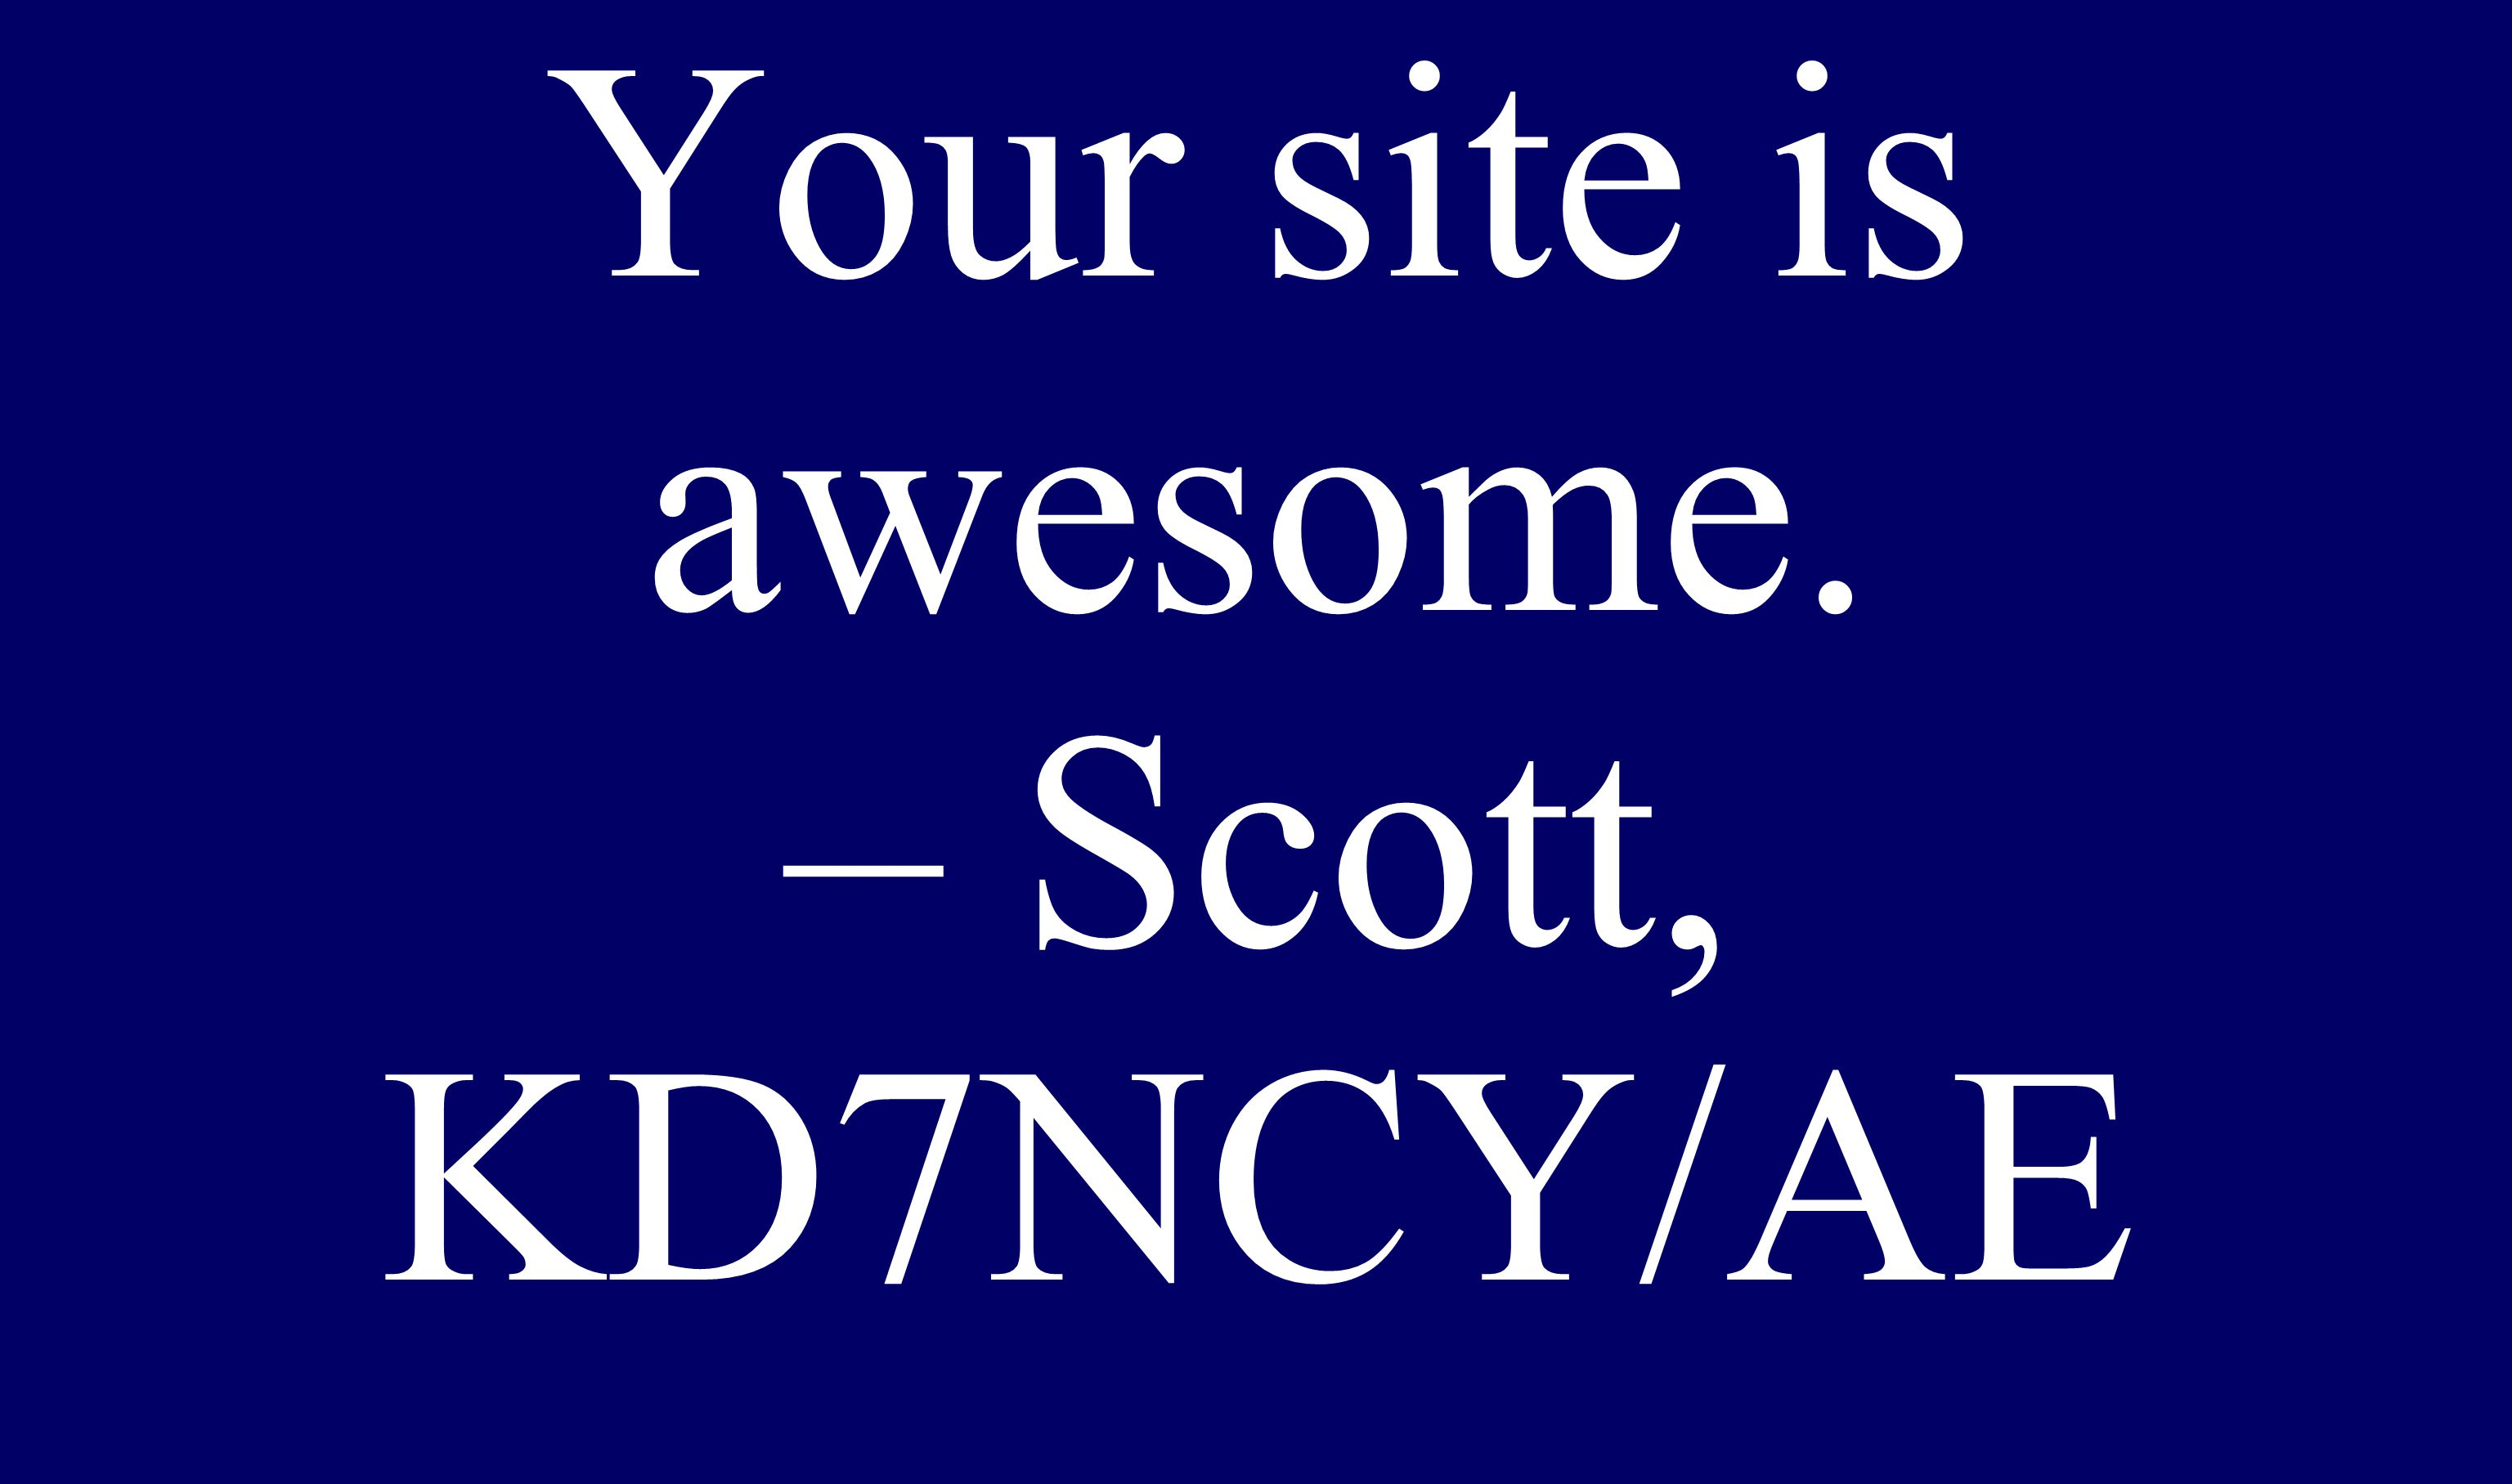 Senior Your site is awesome. – Scott, KD7NCY/AE